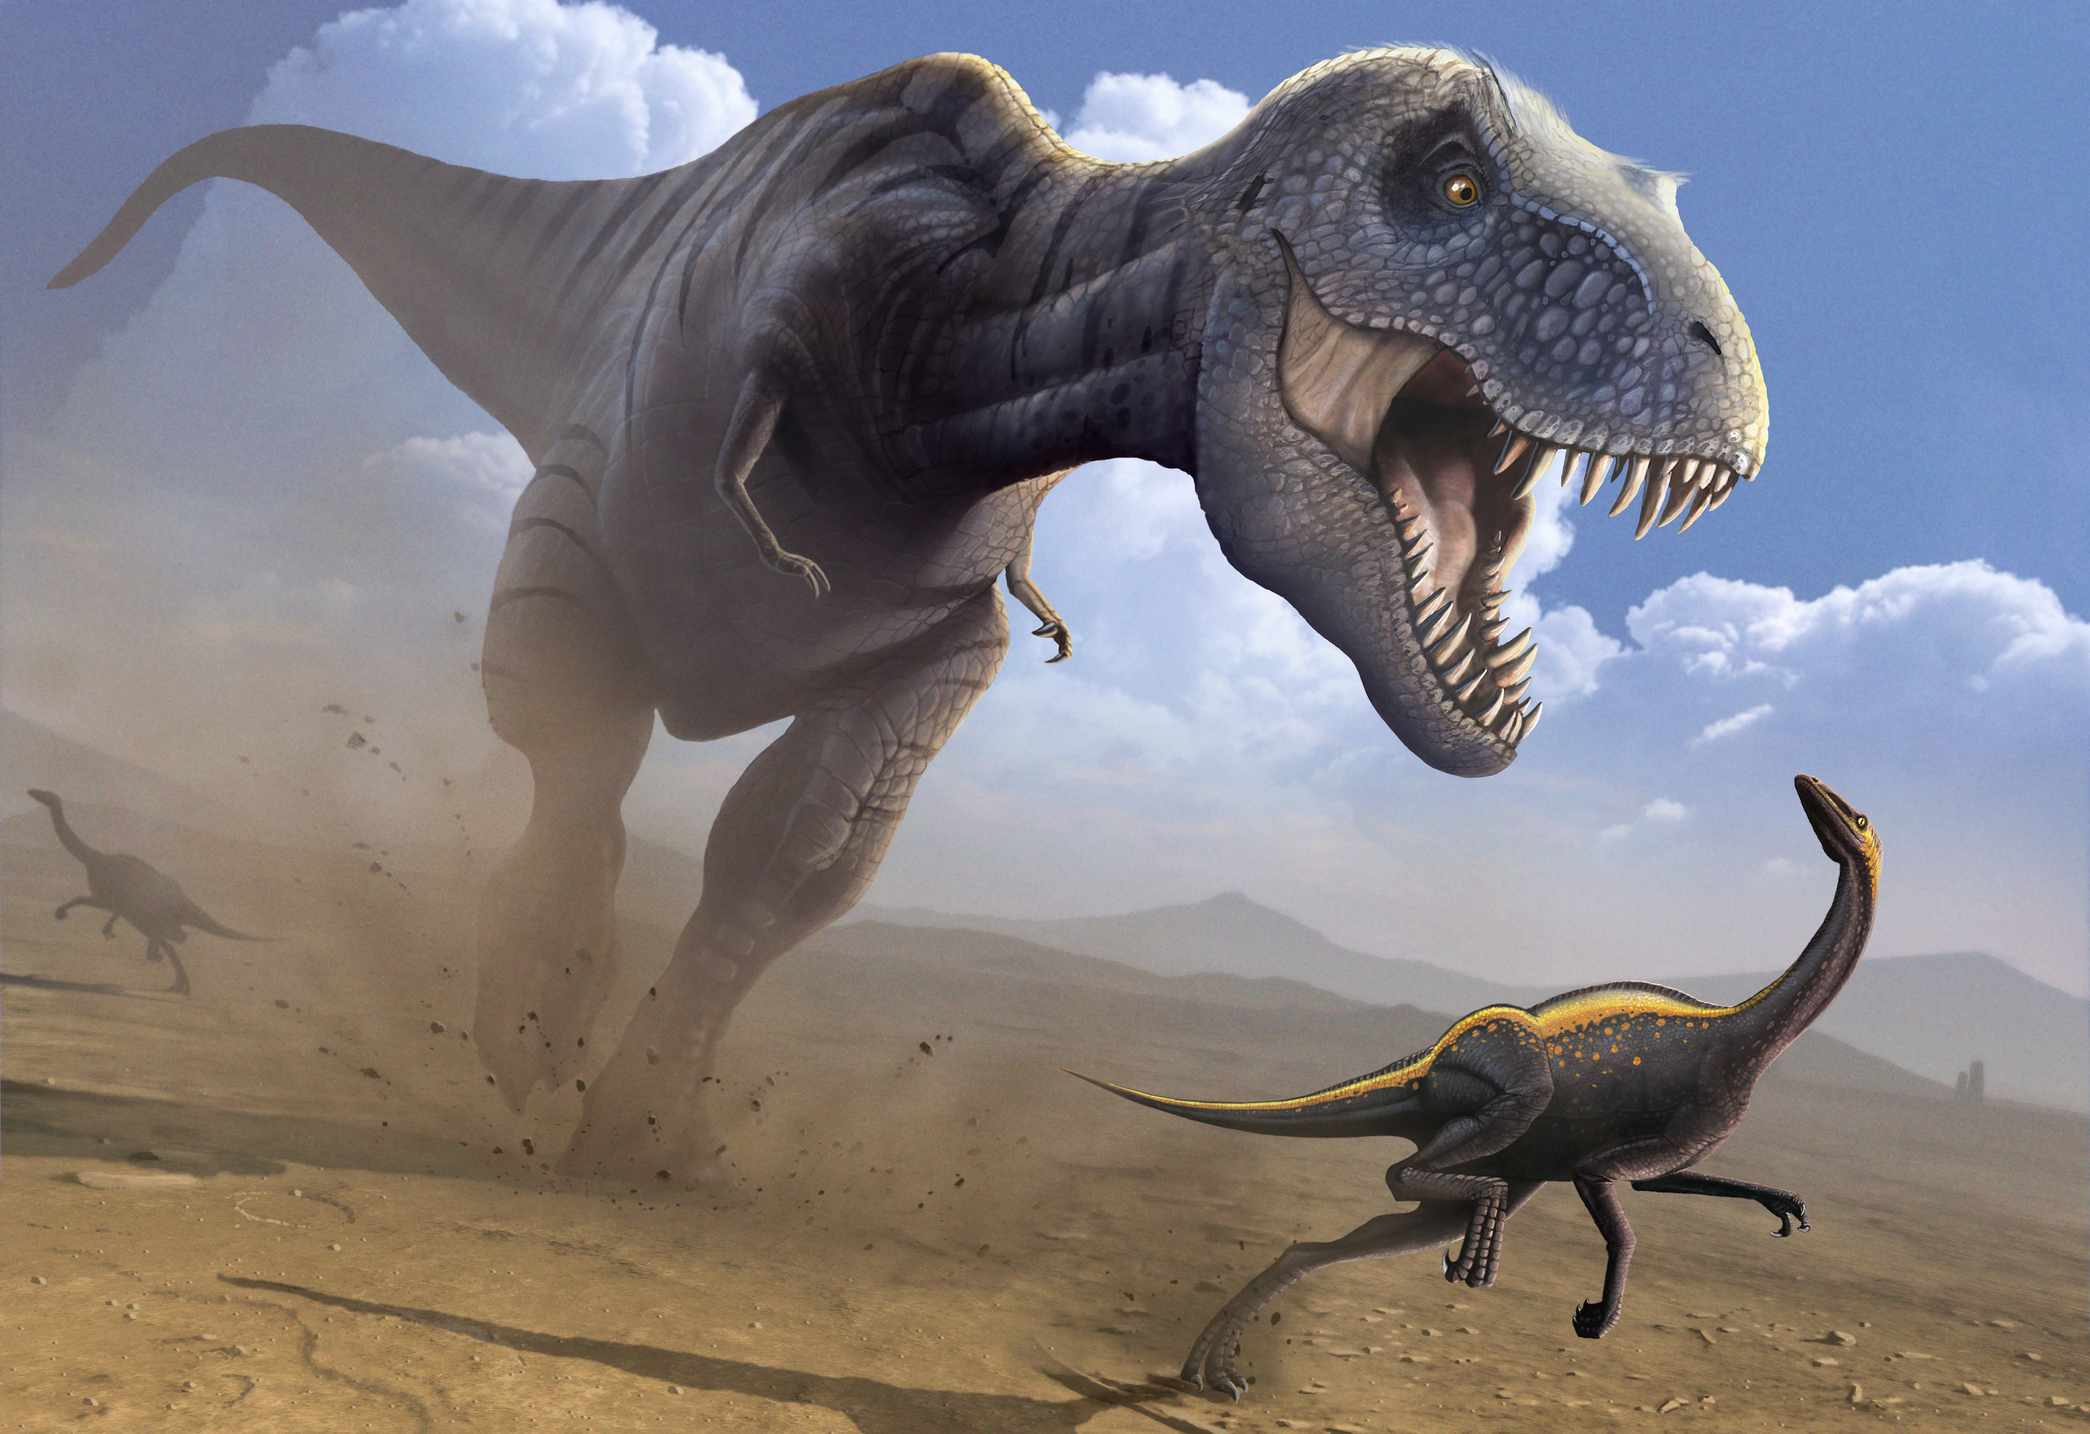 artwork of a Tyrannosaurus rex running after smaller dinosaur with mouth open